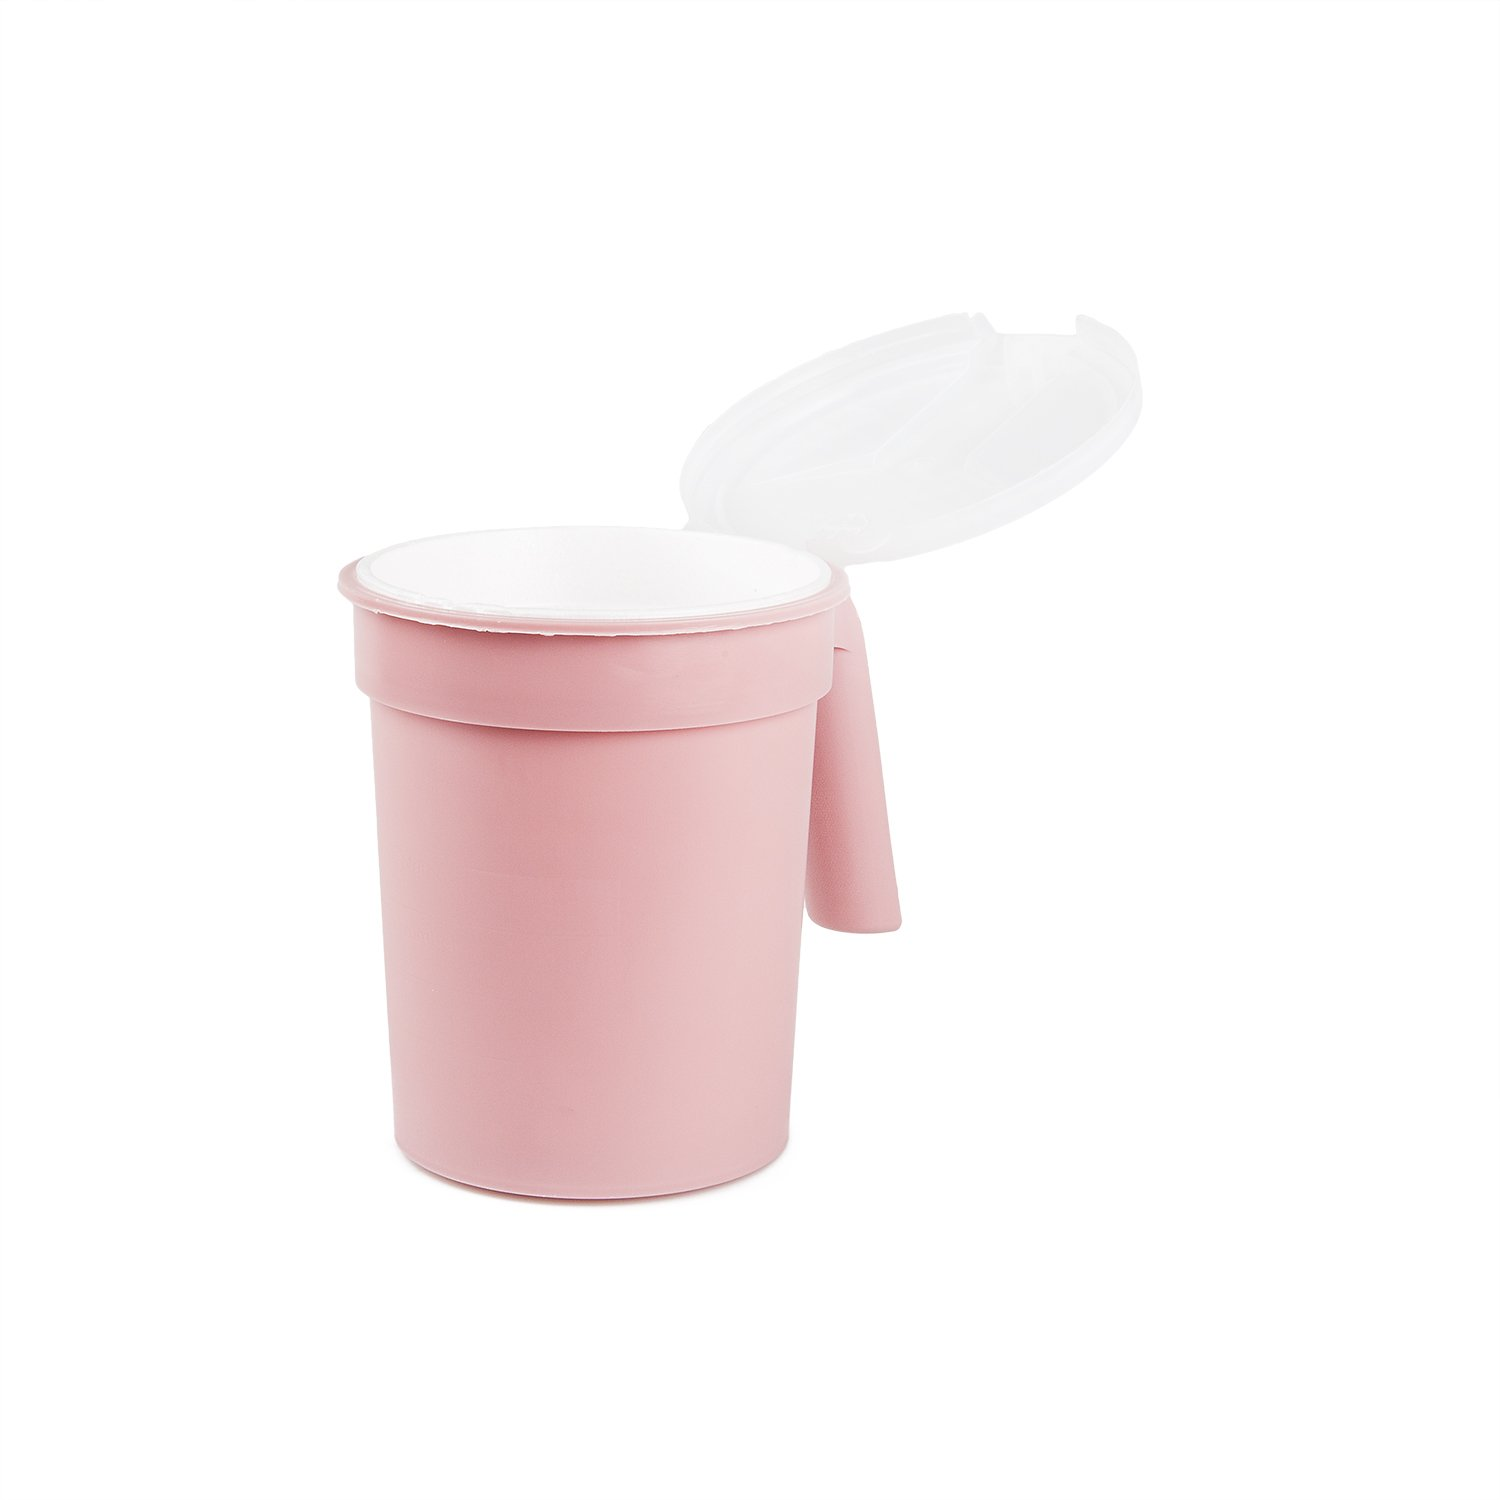 Medegen Medical Products H238-10 Pitcher and Foam Liner Set, 28 oz. Capacity, Dusty Rose (Pack of 27)